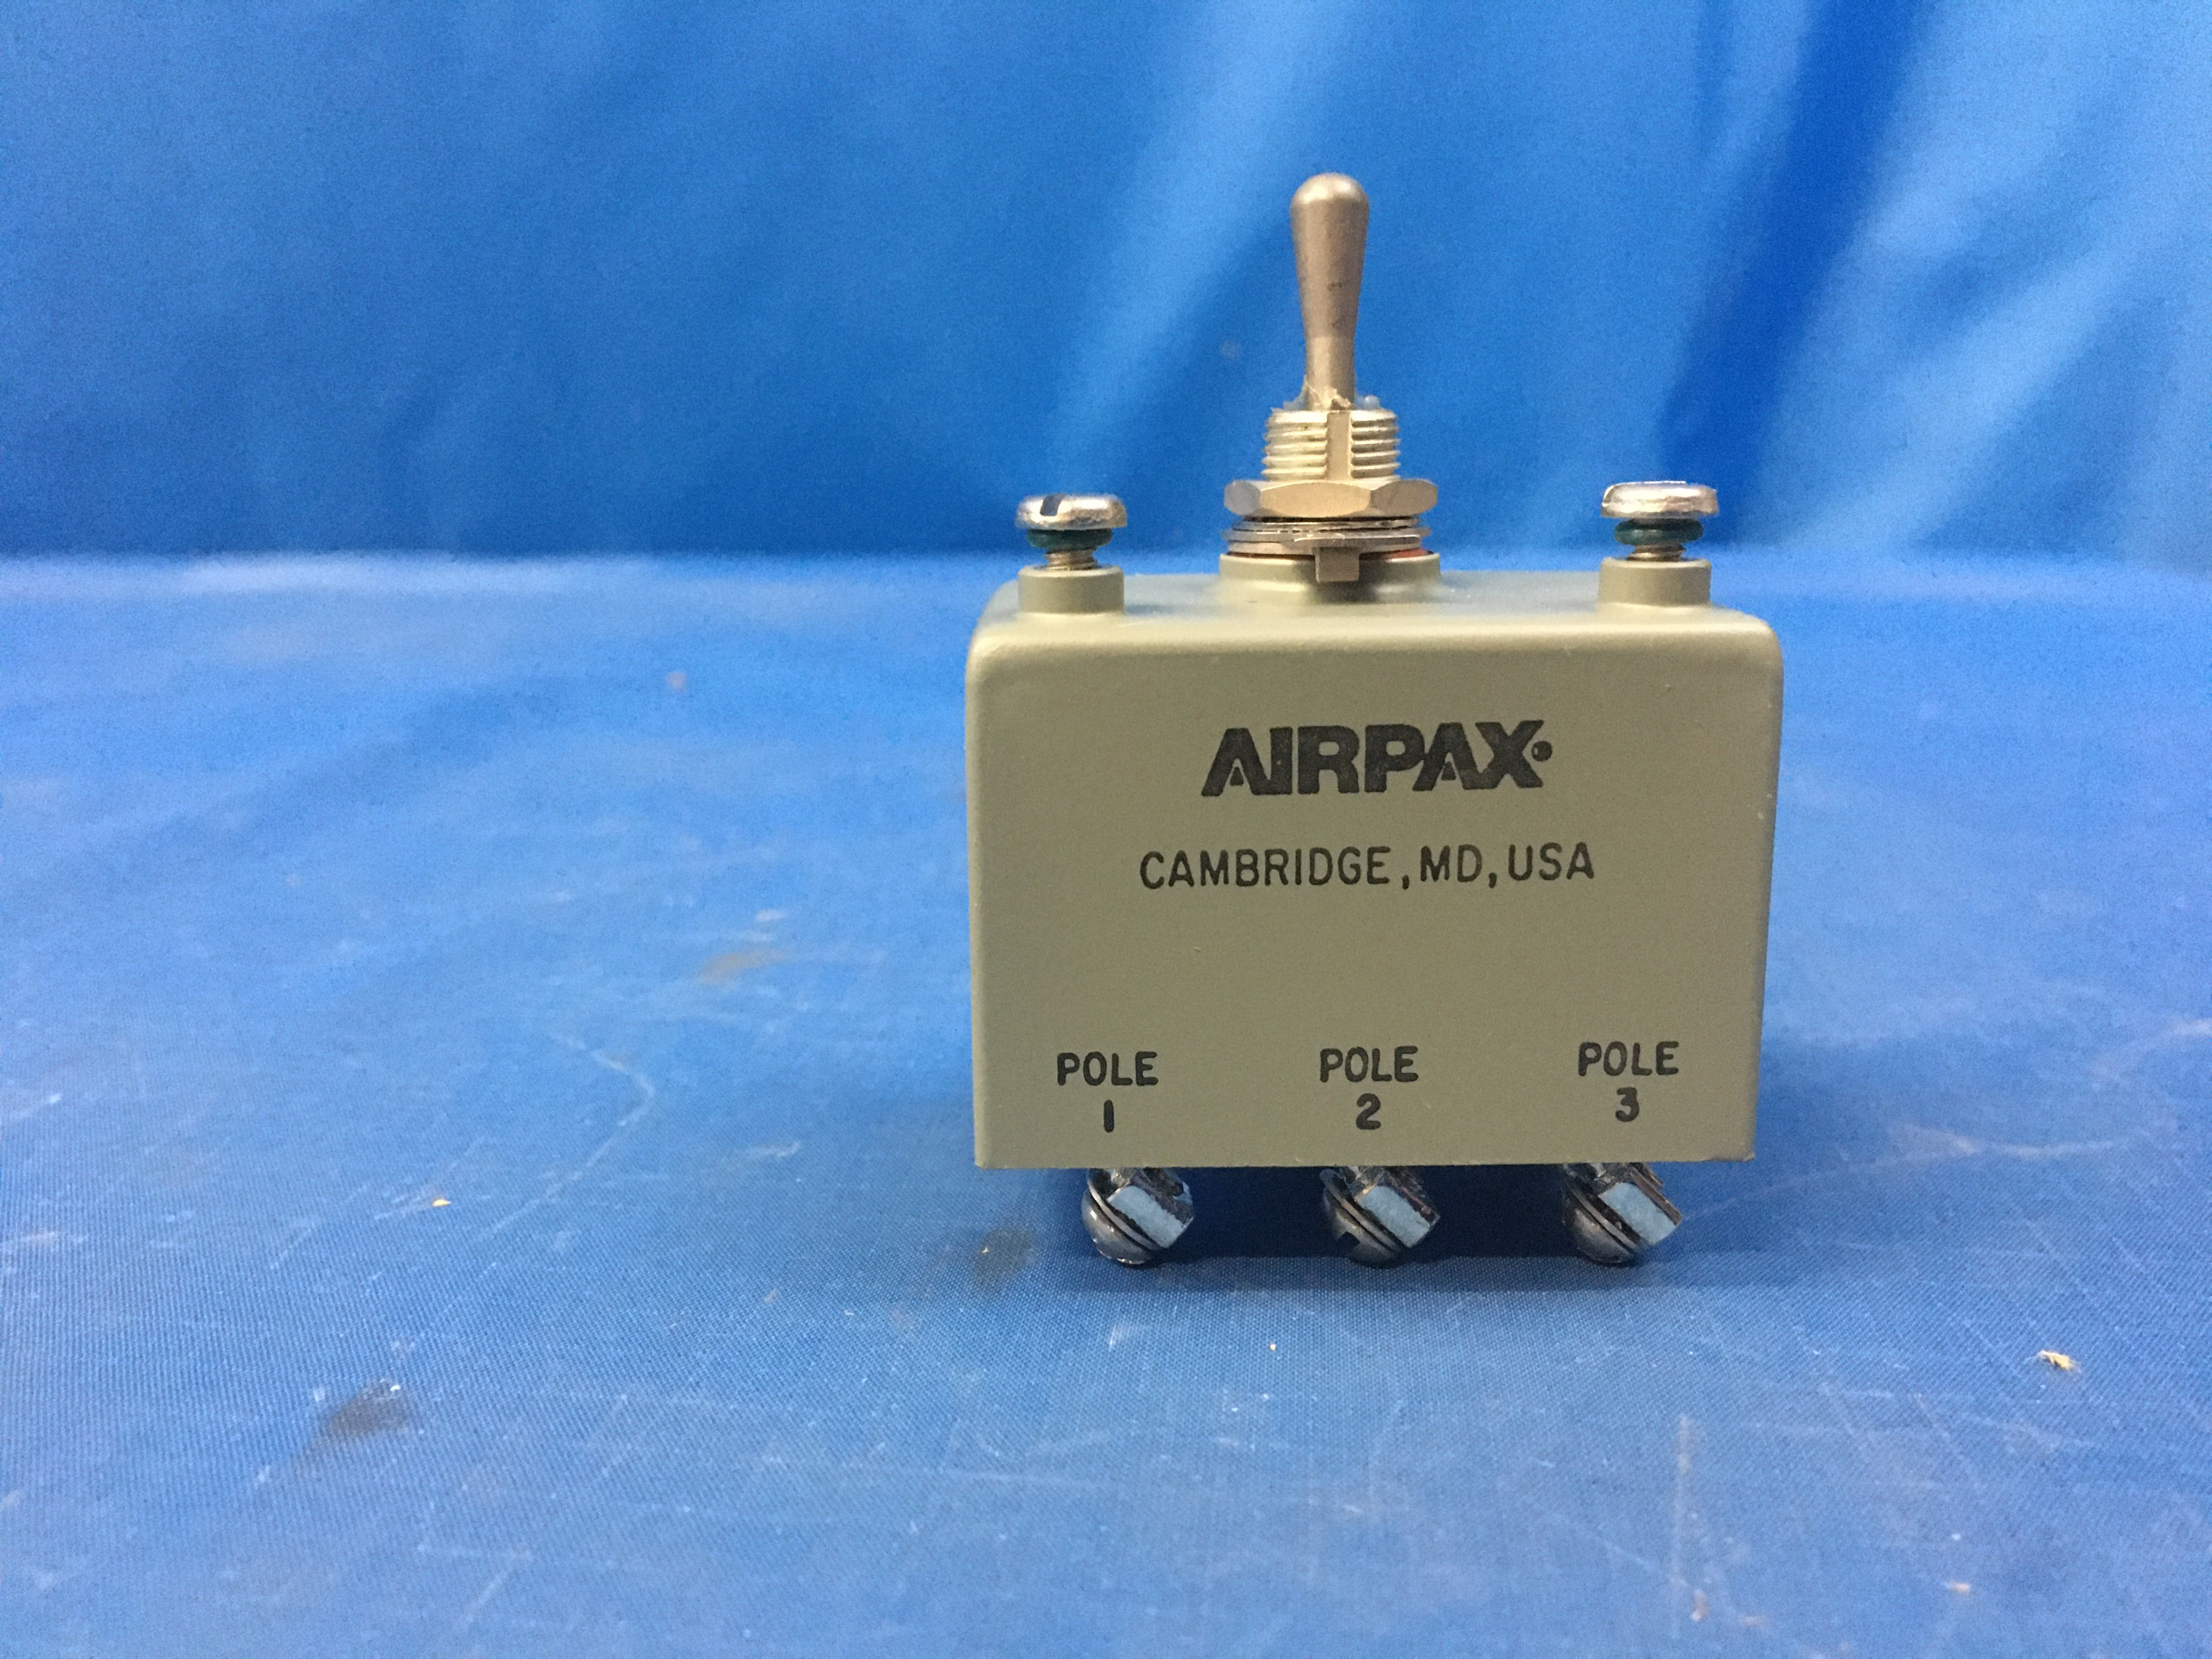 Airpax AP-116-1RC-20776-1 Circuit Breaker 2.5A/240V/3P NSN:5925-01-227-5536